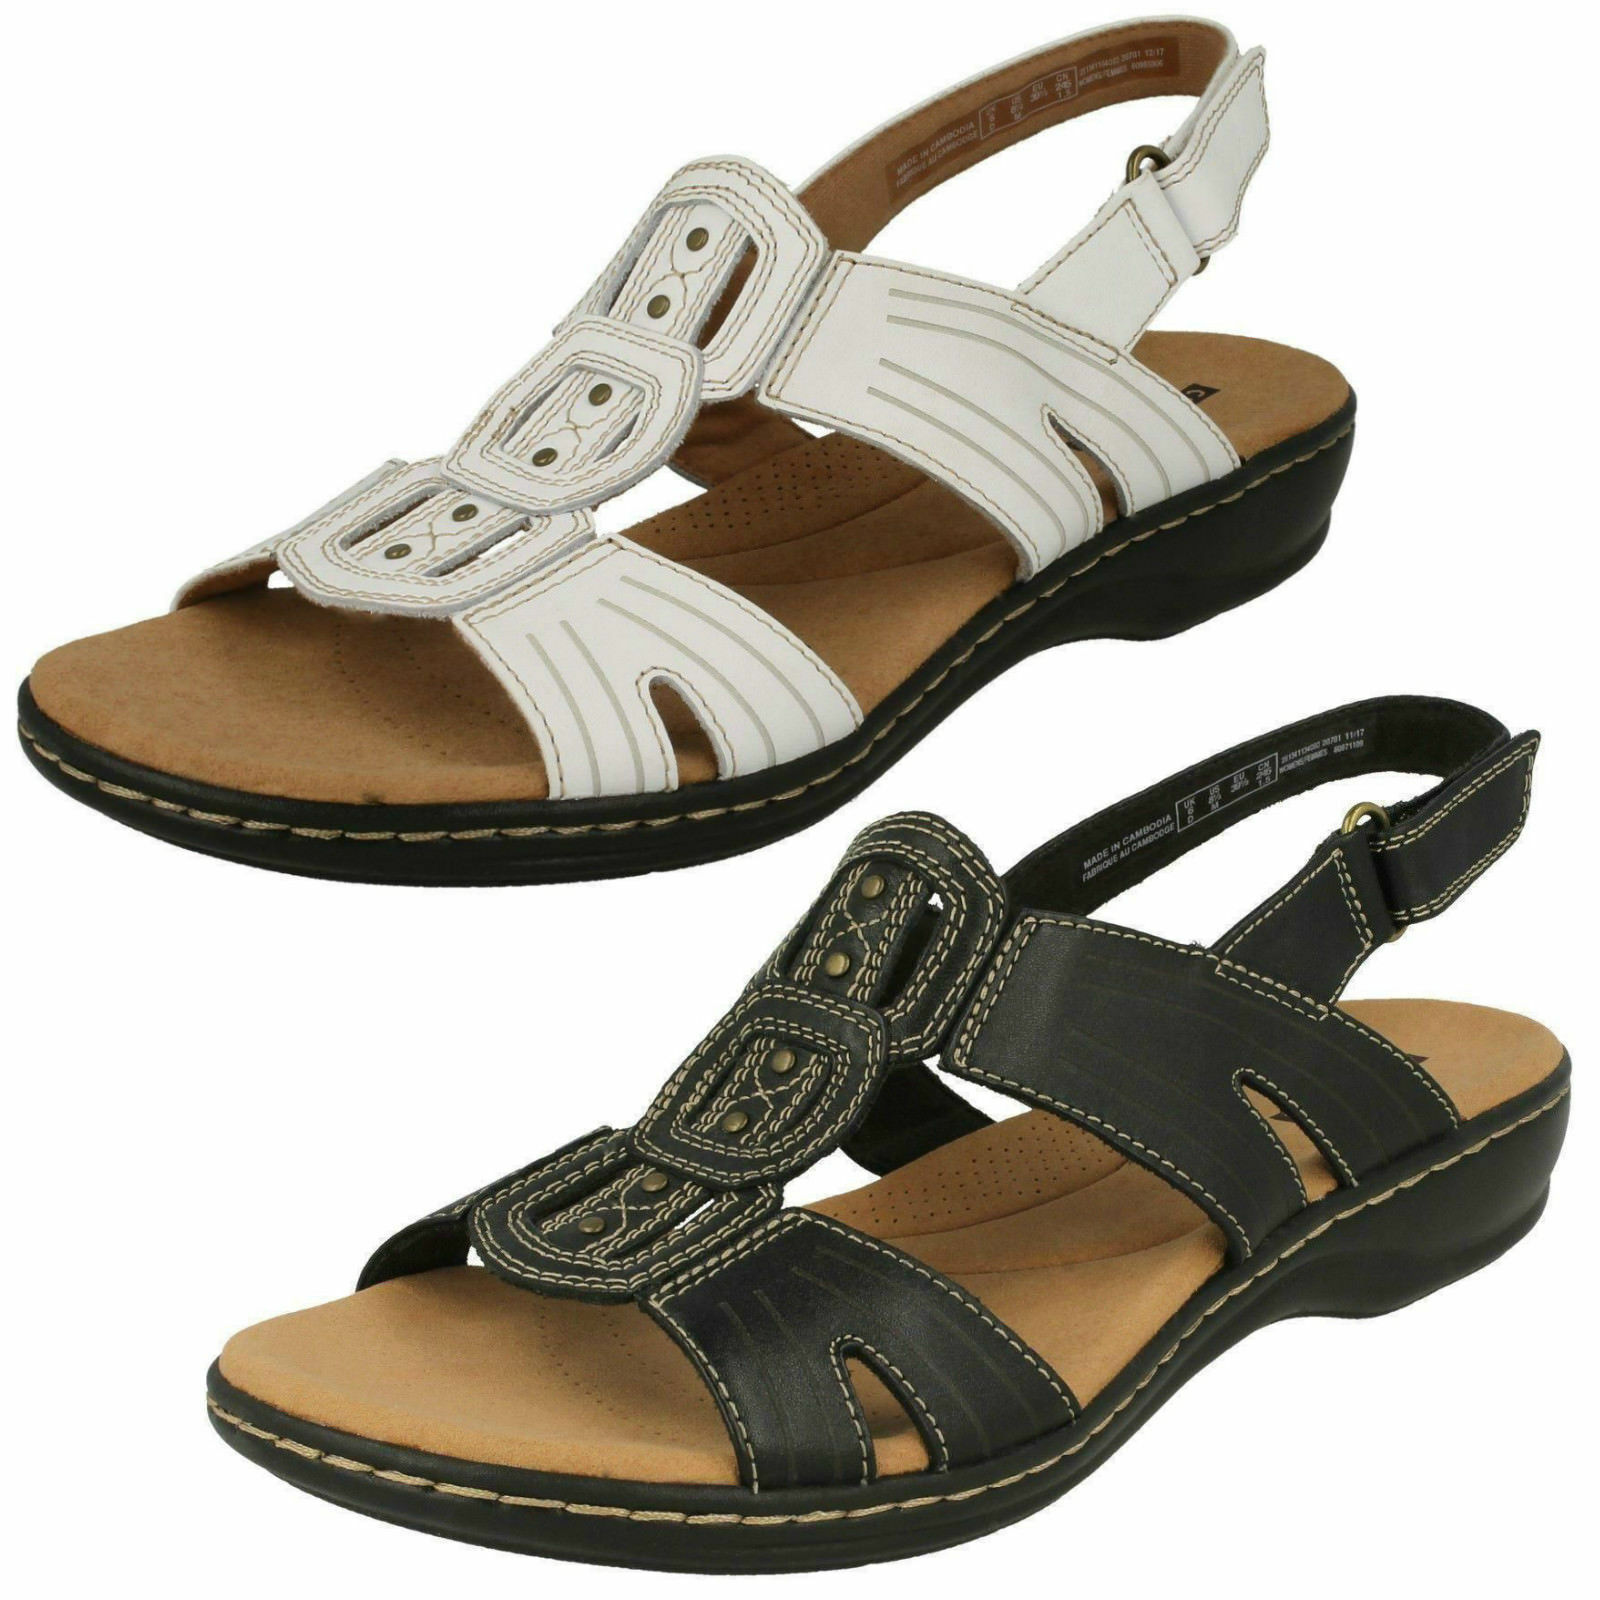 CLARKS LADIES SANDALS LEISA VINE